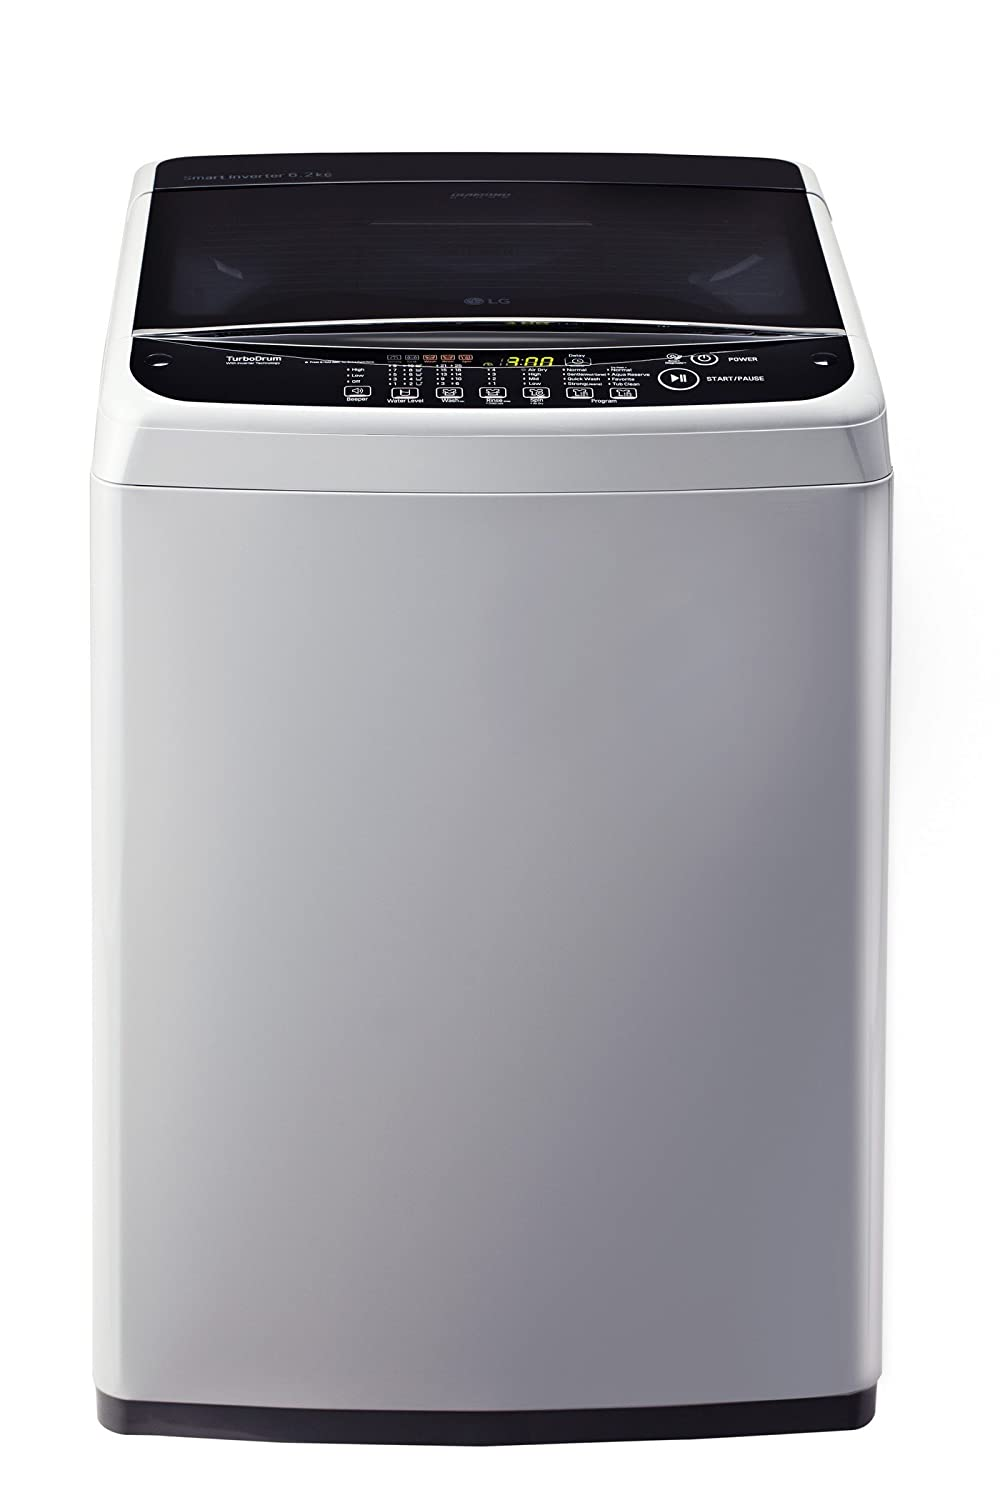 LG 6.2 kg Inverter Fully-Automatic Top Loading Washing Machine (T7281NDDLG, Middle Free Silver)